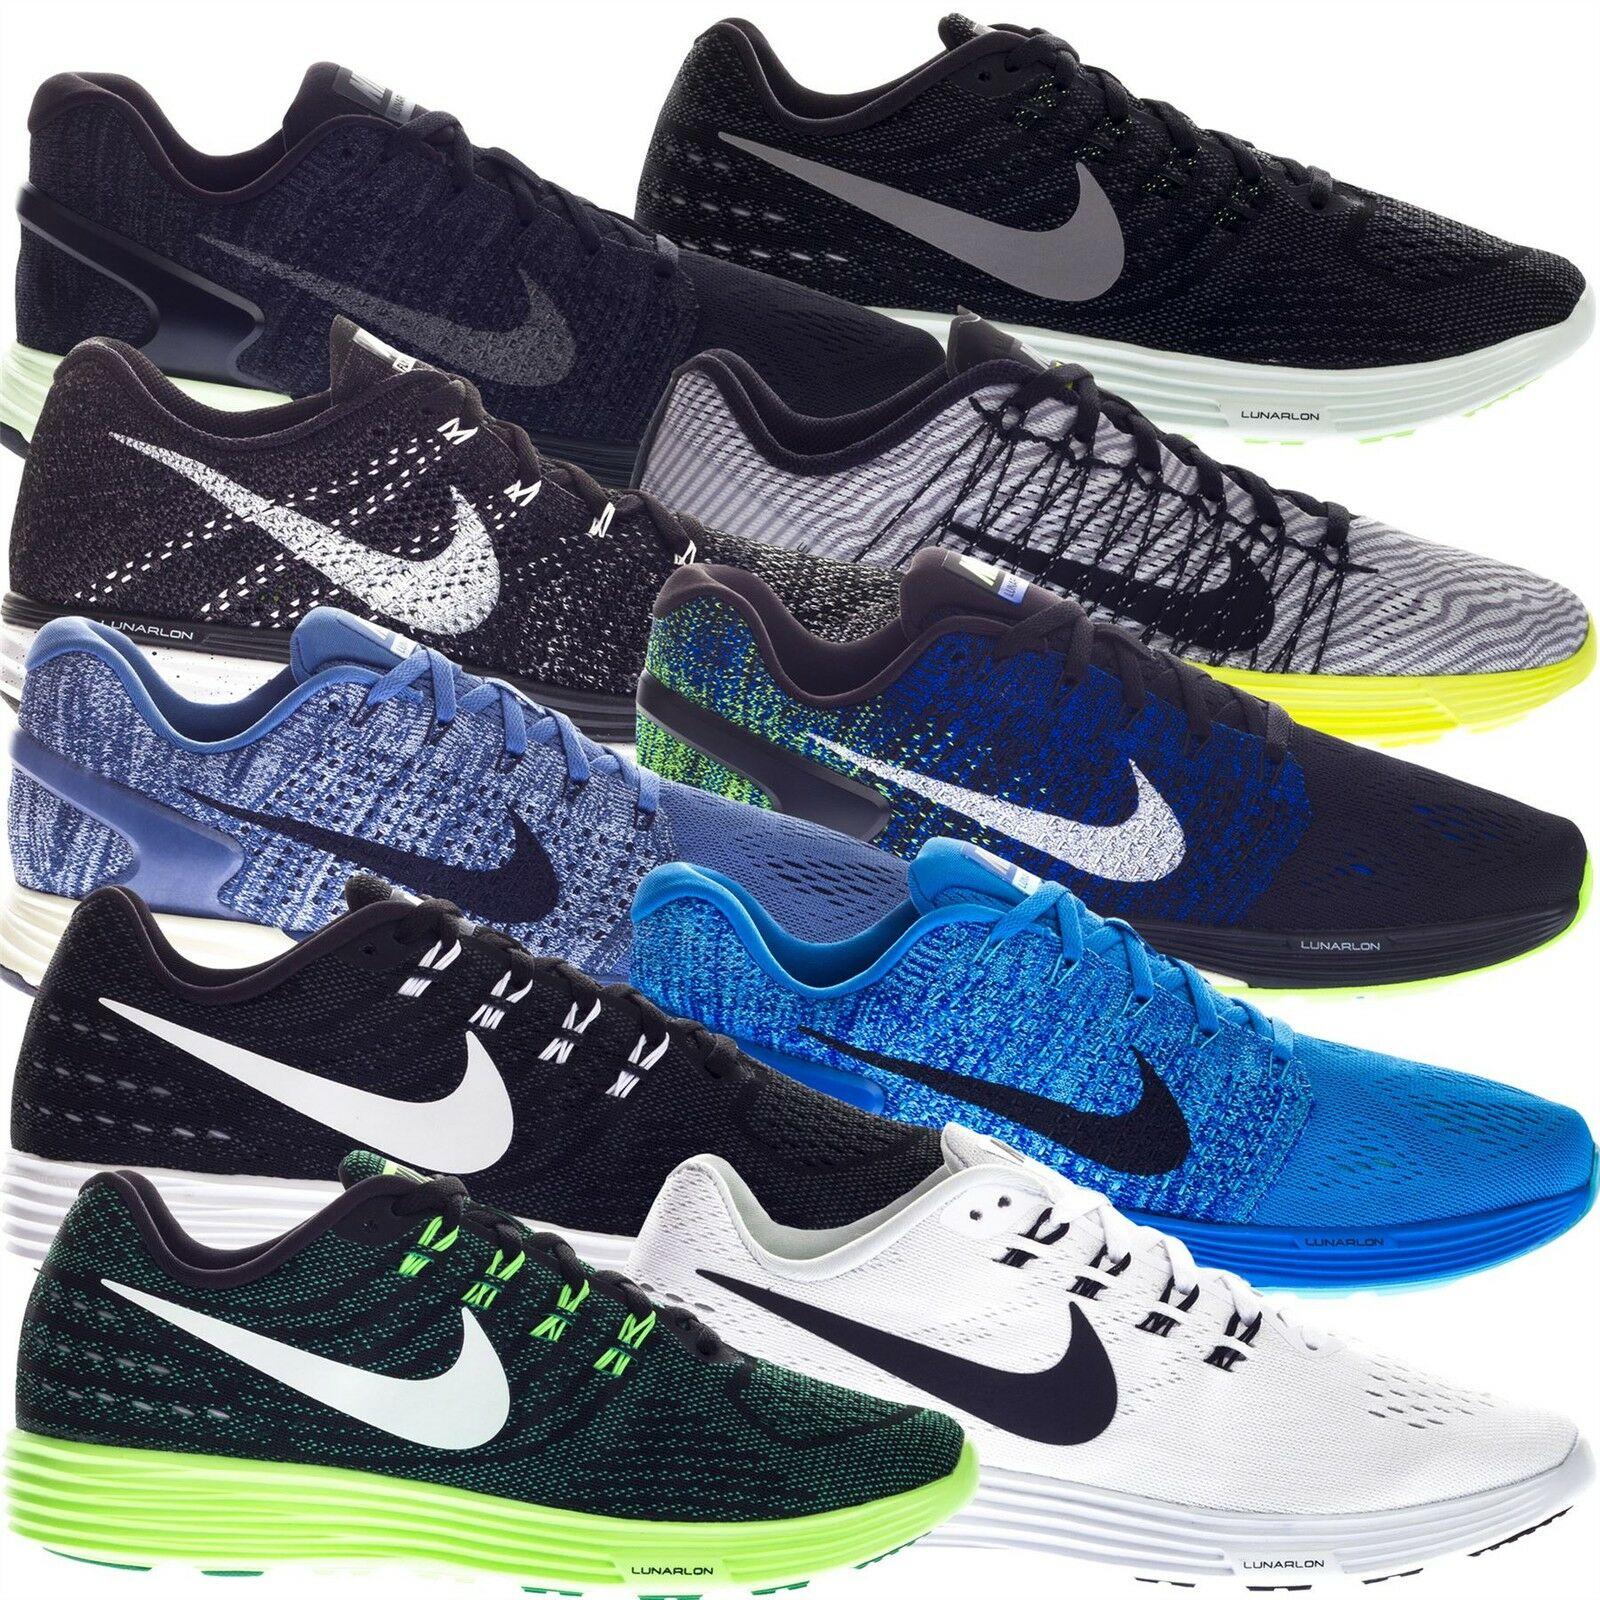 Nike Men's Racer Flywire Lunar Tempo Gilde Racer Men's LB Low Top Gym Running Trainers a4e53c